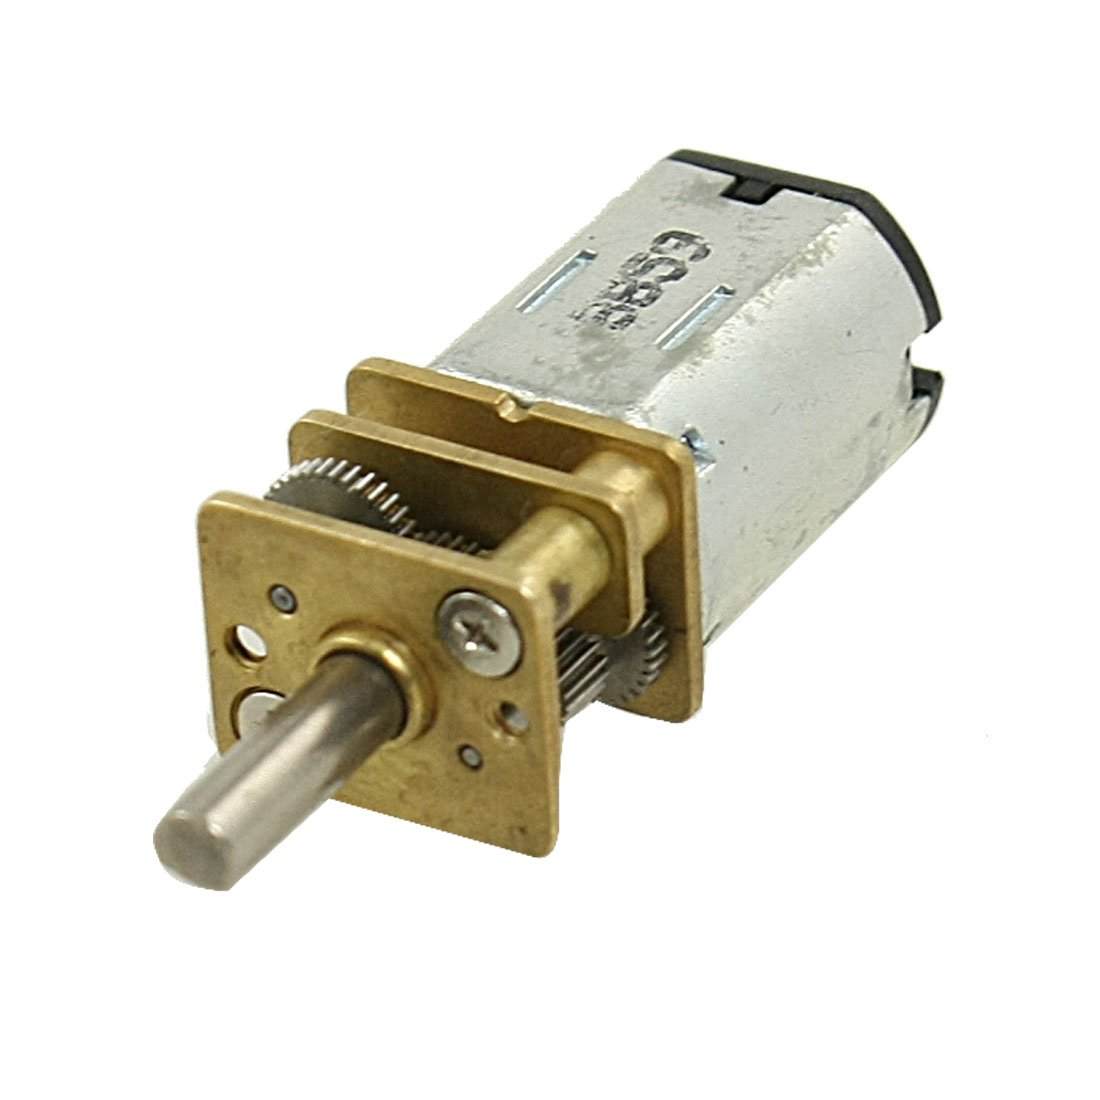 uxcell 400RPM 6V 0.45A High Torque Mini Electric DC Gear Box Motor for Robot